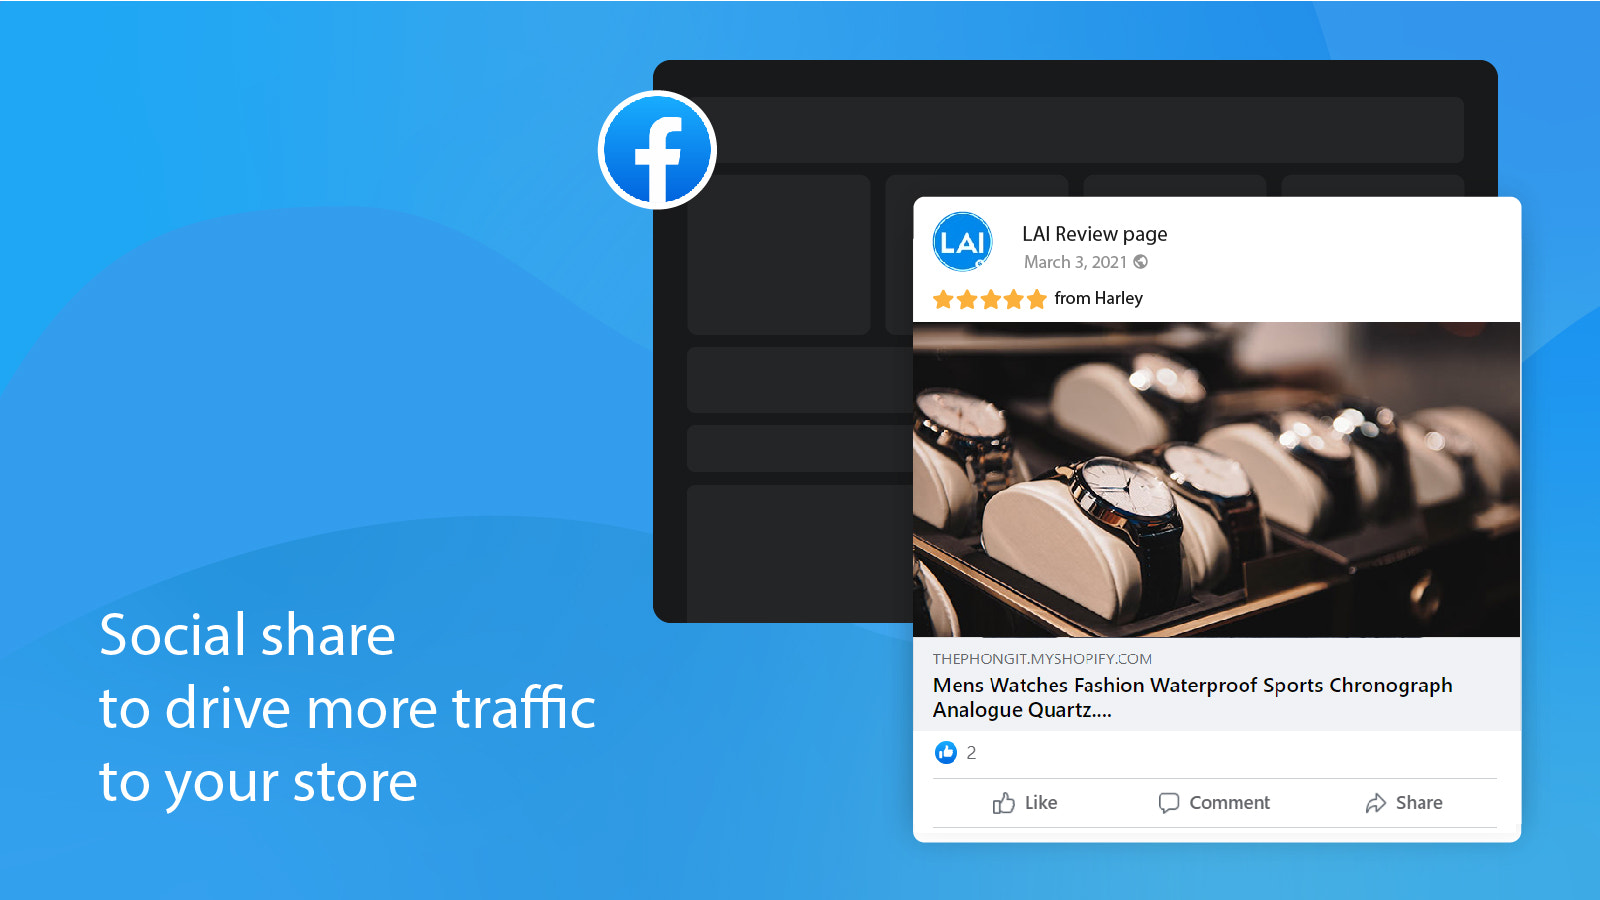 social share product reviews to attract more customers